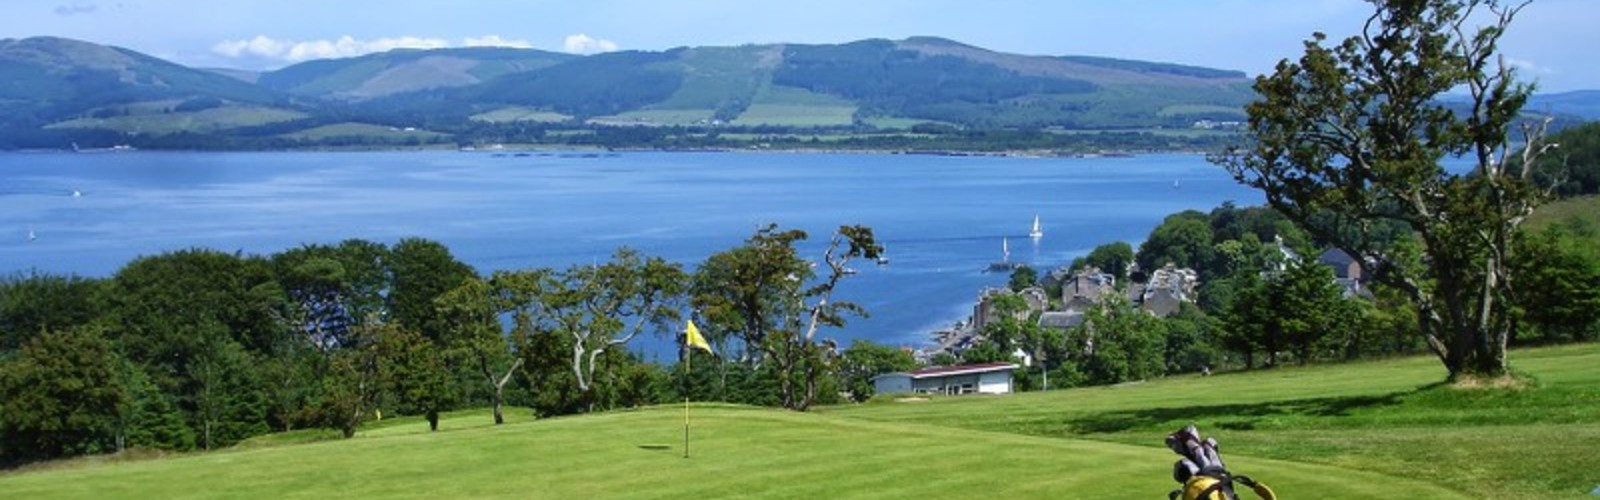 Port bannatyne golf